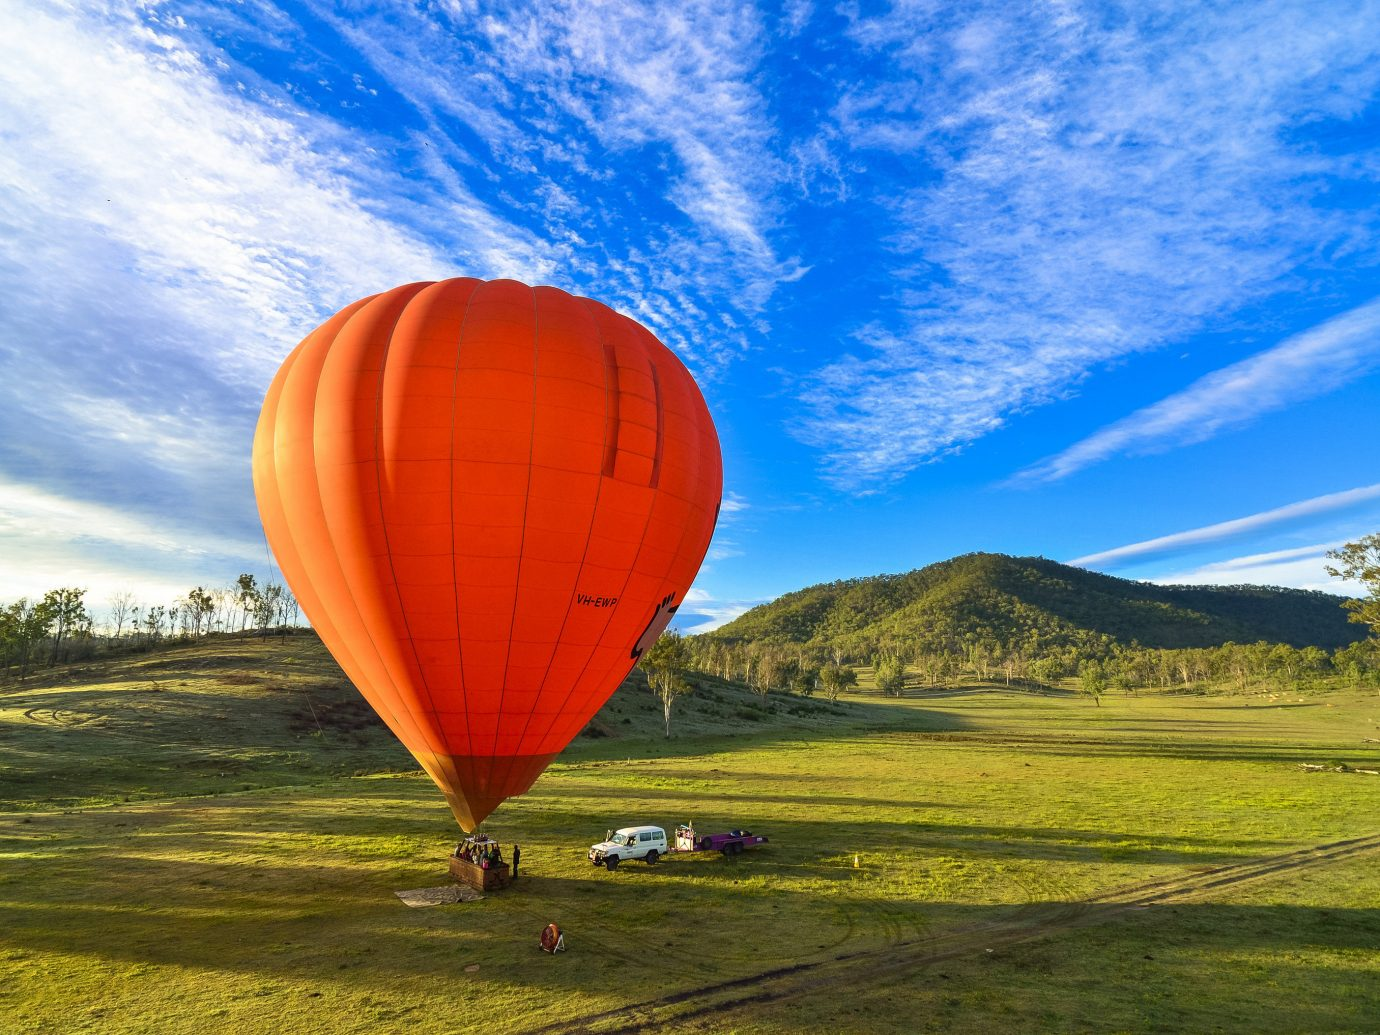 Trip Ideas grass balloon aircraft sky transport outdoor hot air ballooning Hot Air Balloon field mountain vehicle atmosphere of earth orange toy flight grassy lush